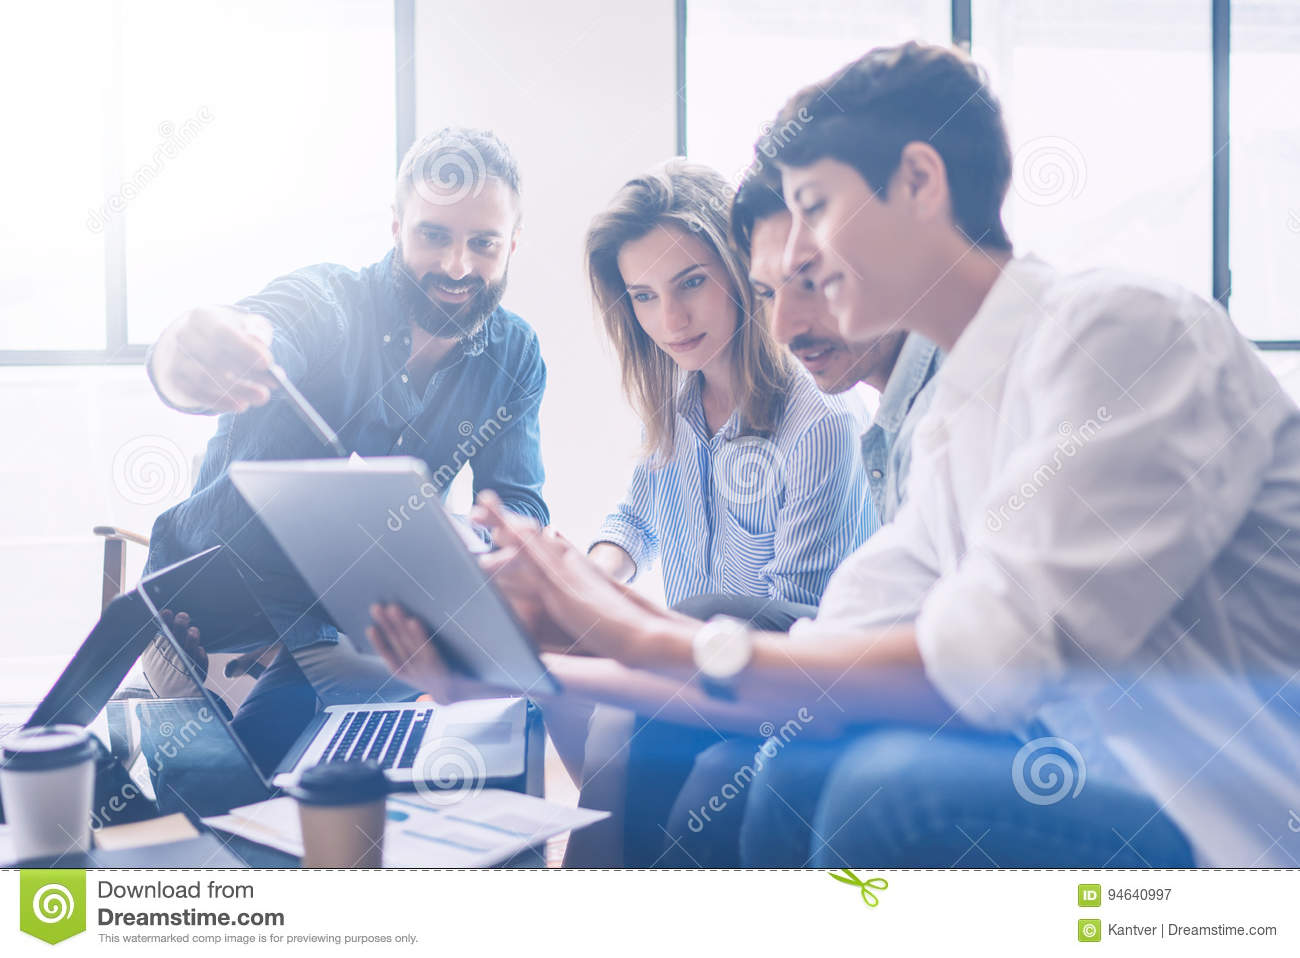 Business meeting concept.Coworkers team working new startup project at modern office.Analyze business documents, using